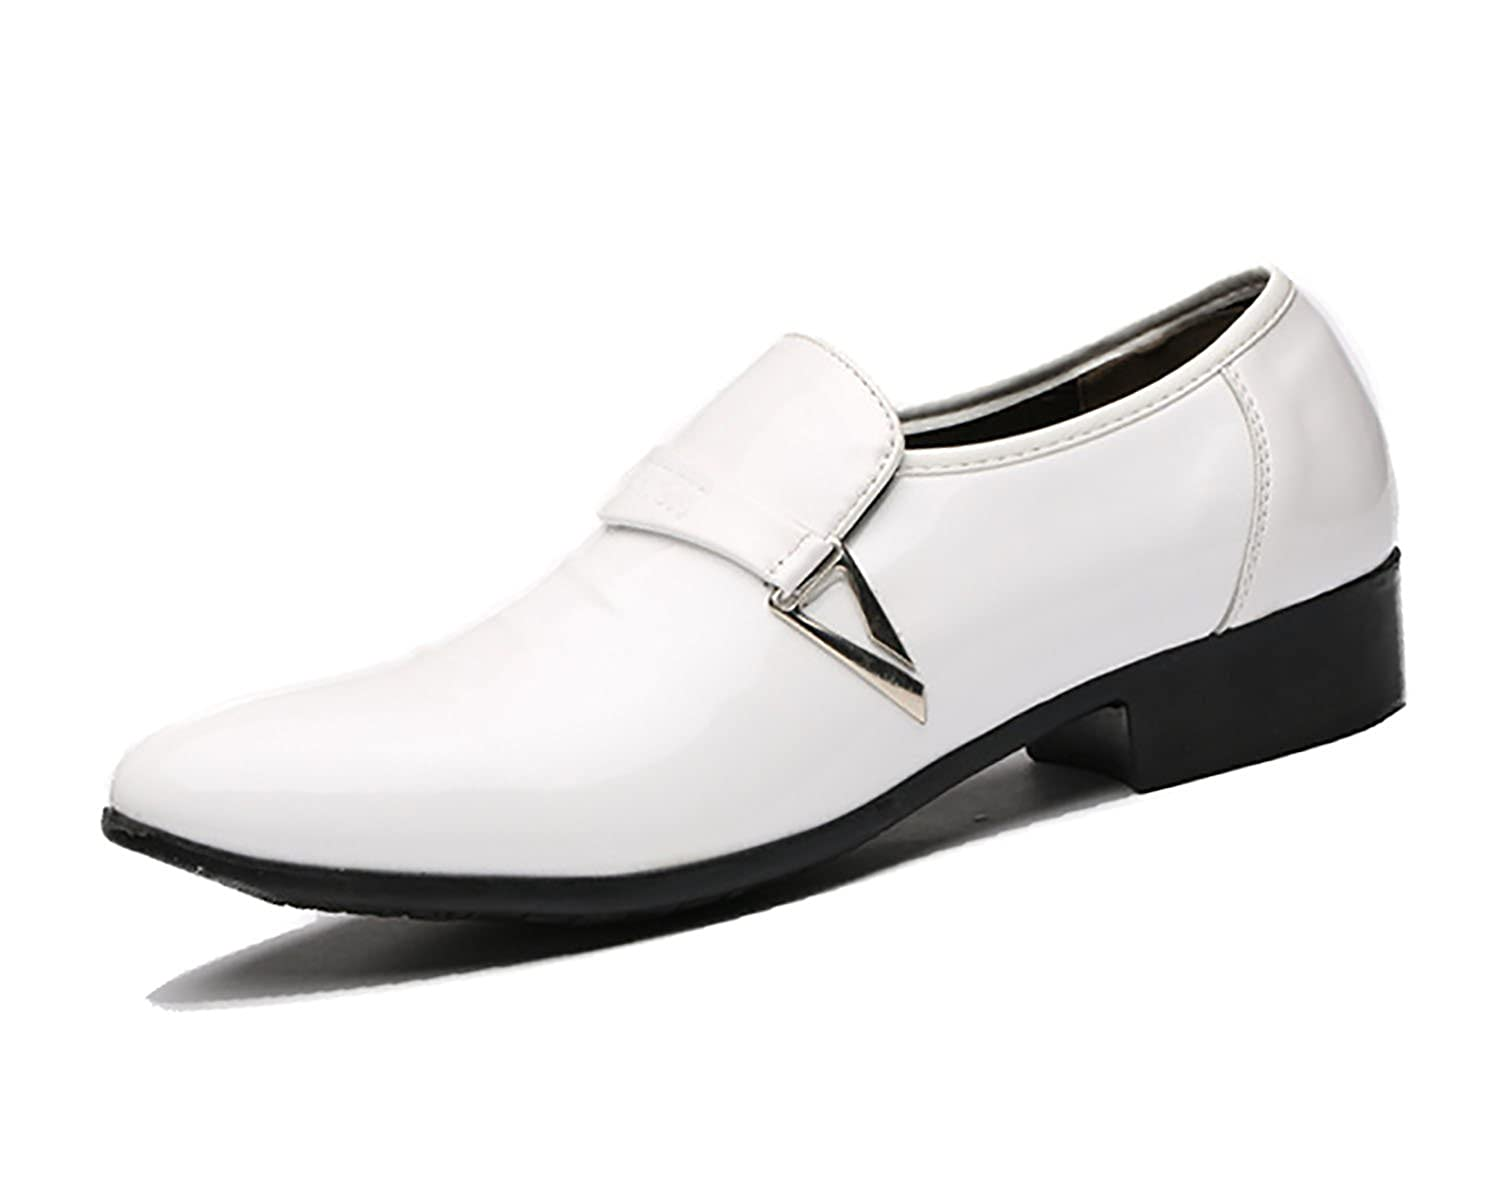 Zzhap Men's Pointed-Toe Tuxedo Dress Shoes Casual Slip-on Loafer